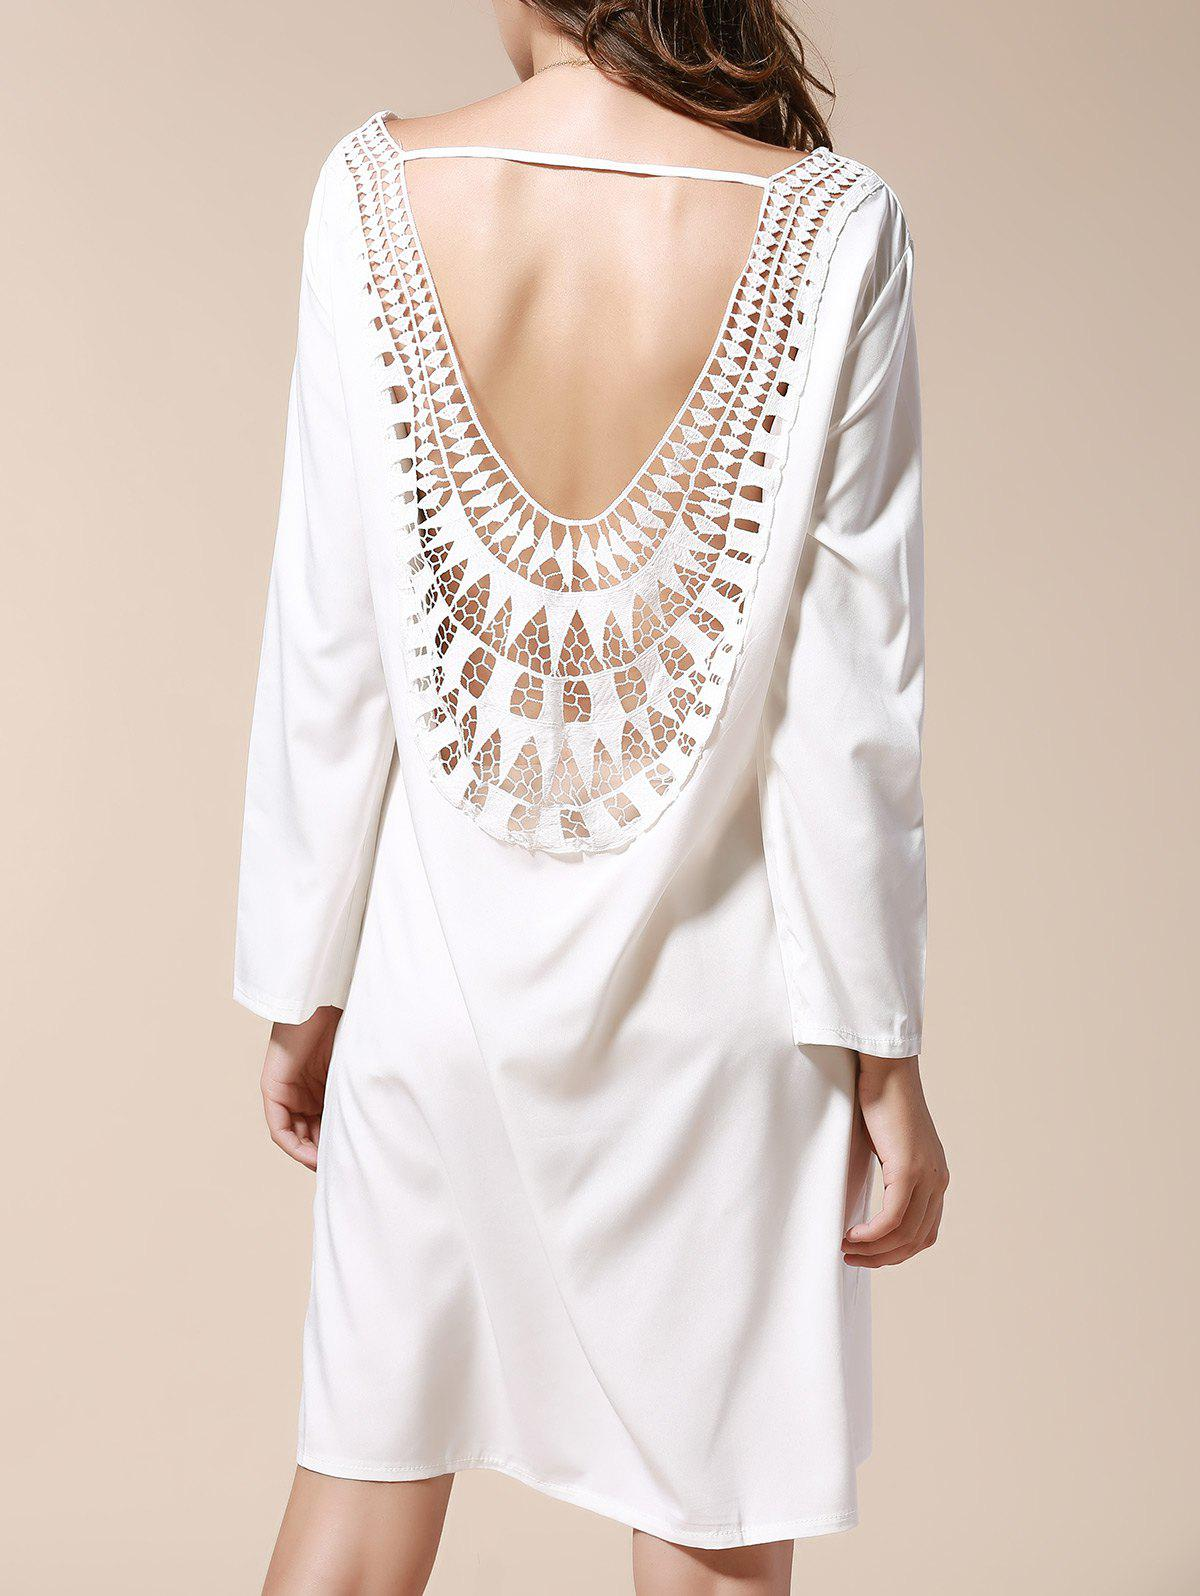 Sexy Scoop Neck Long Sleeve Hollow Out Backless Women's Dress - WHITE XL